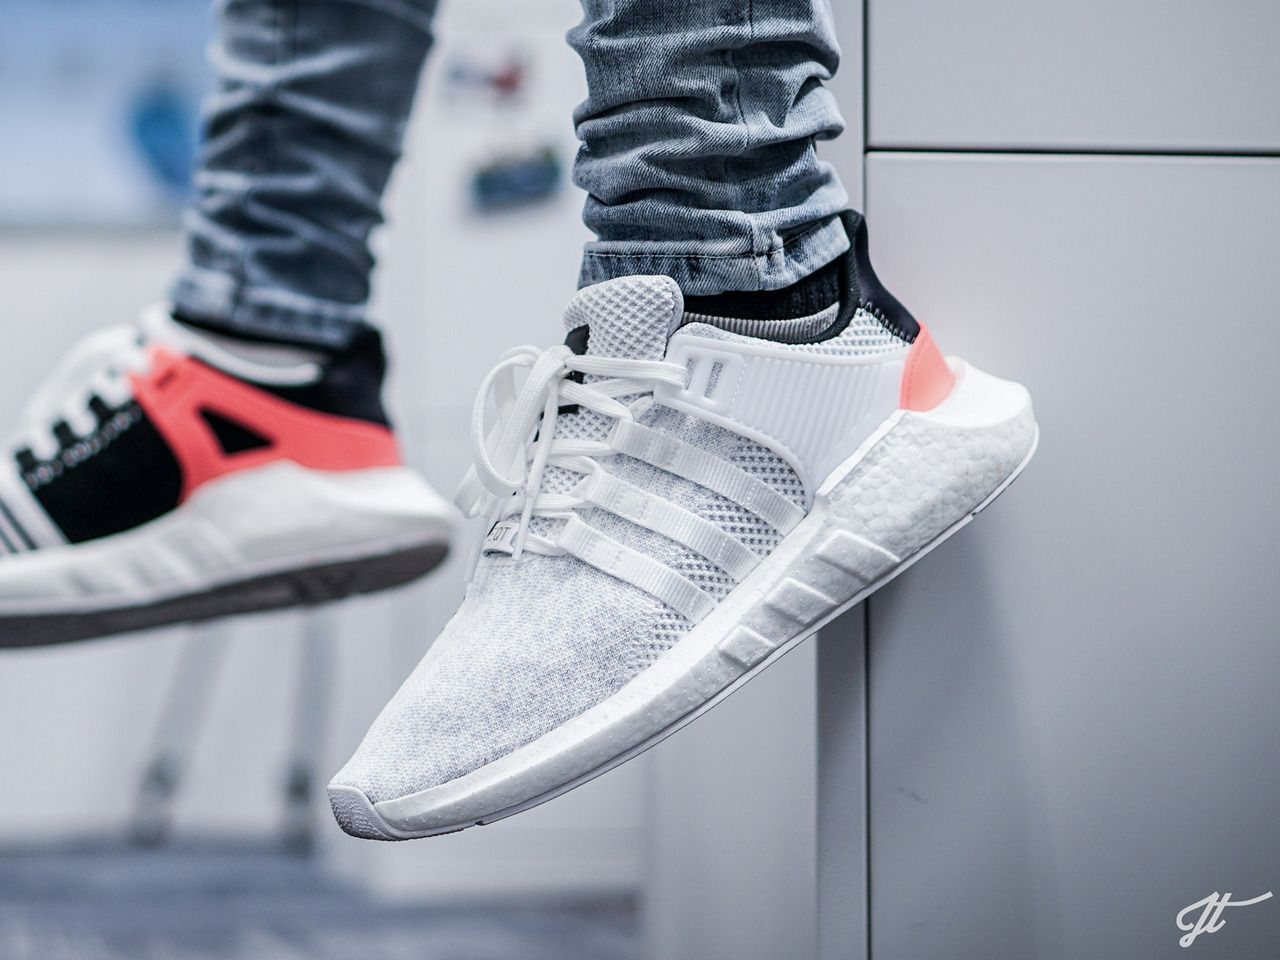 f814c835579 Adidas EQT Support Boost 93 17 - White Turbo Red - 2017 (by jht3) Keep  kicks fresh with Sole Trees PRM shoe tree  ShoeTree  SoleTrees  ShoeTrees